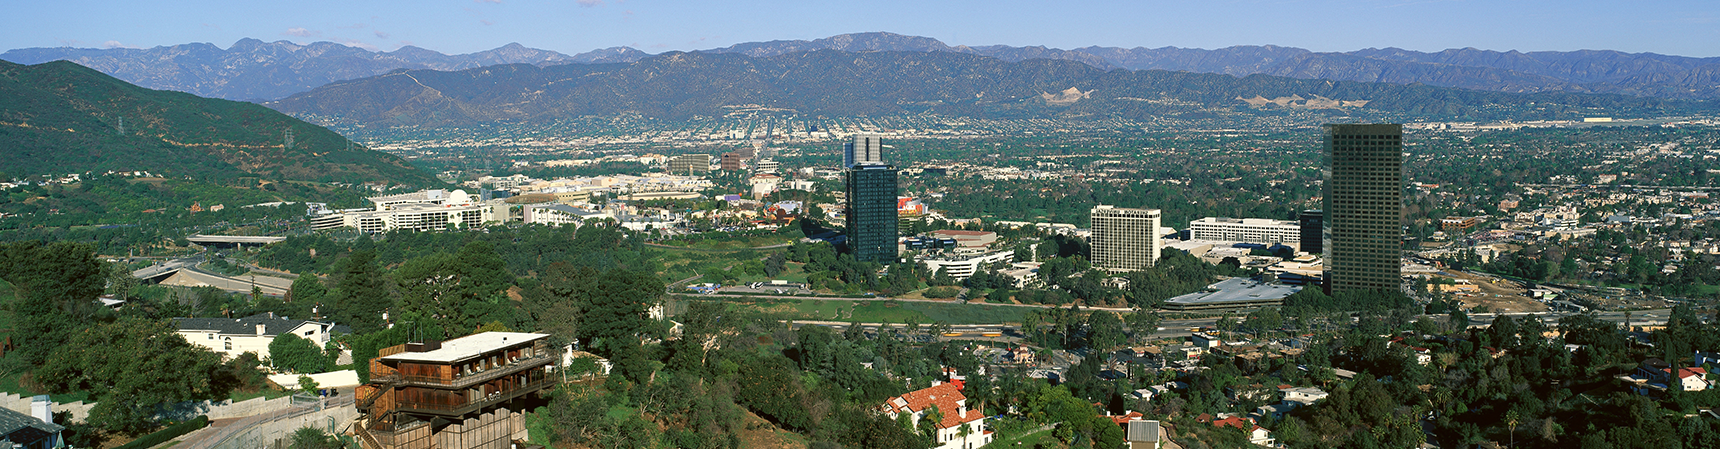 View of the San Fernando Valley from atop a hill.